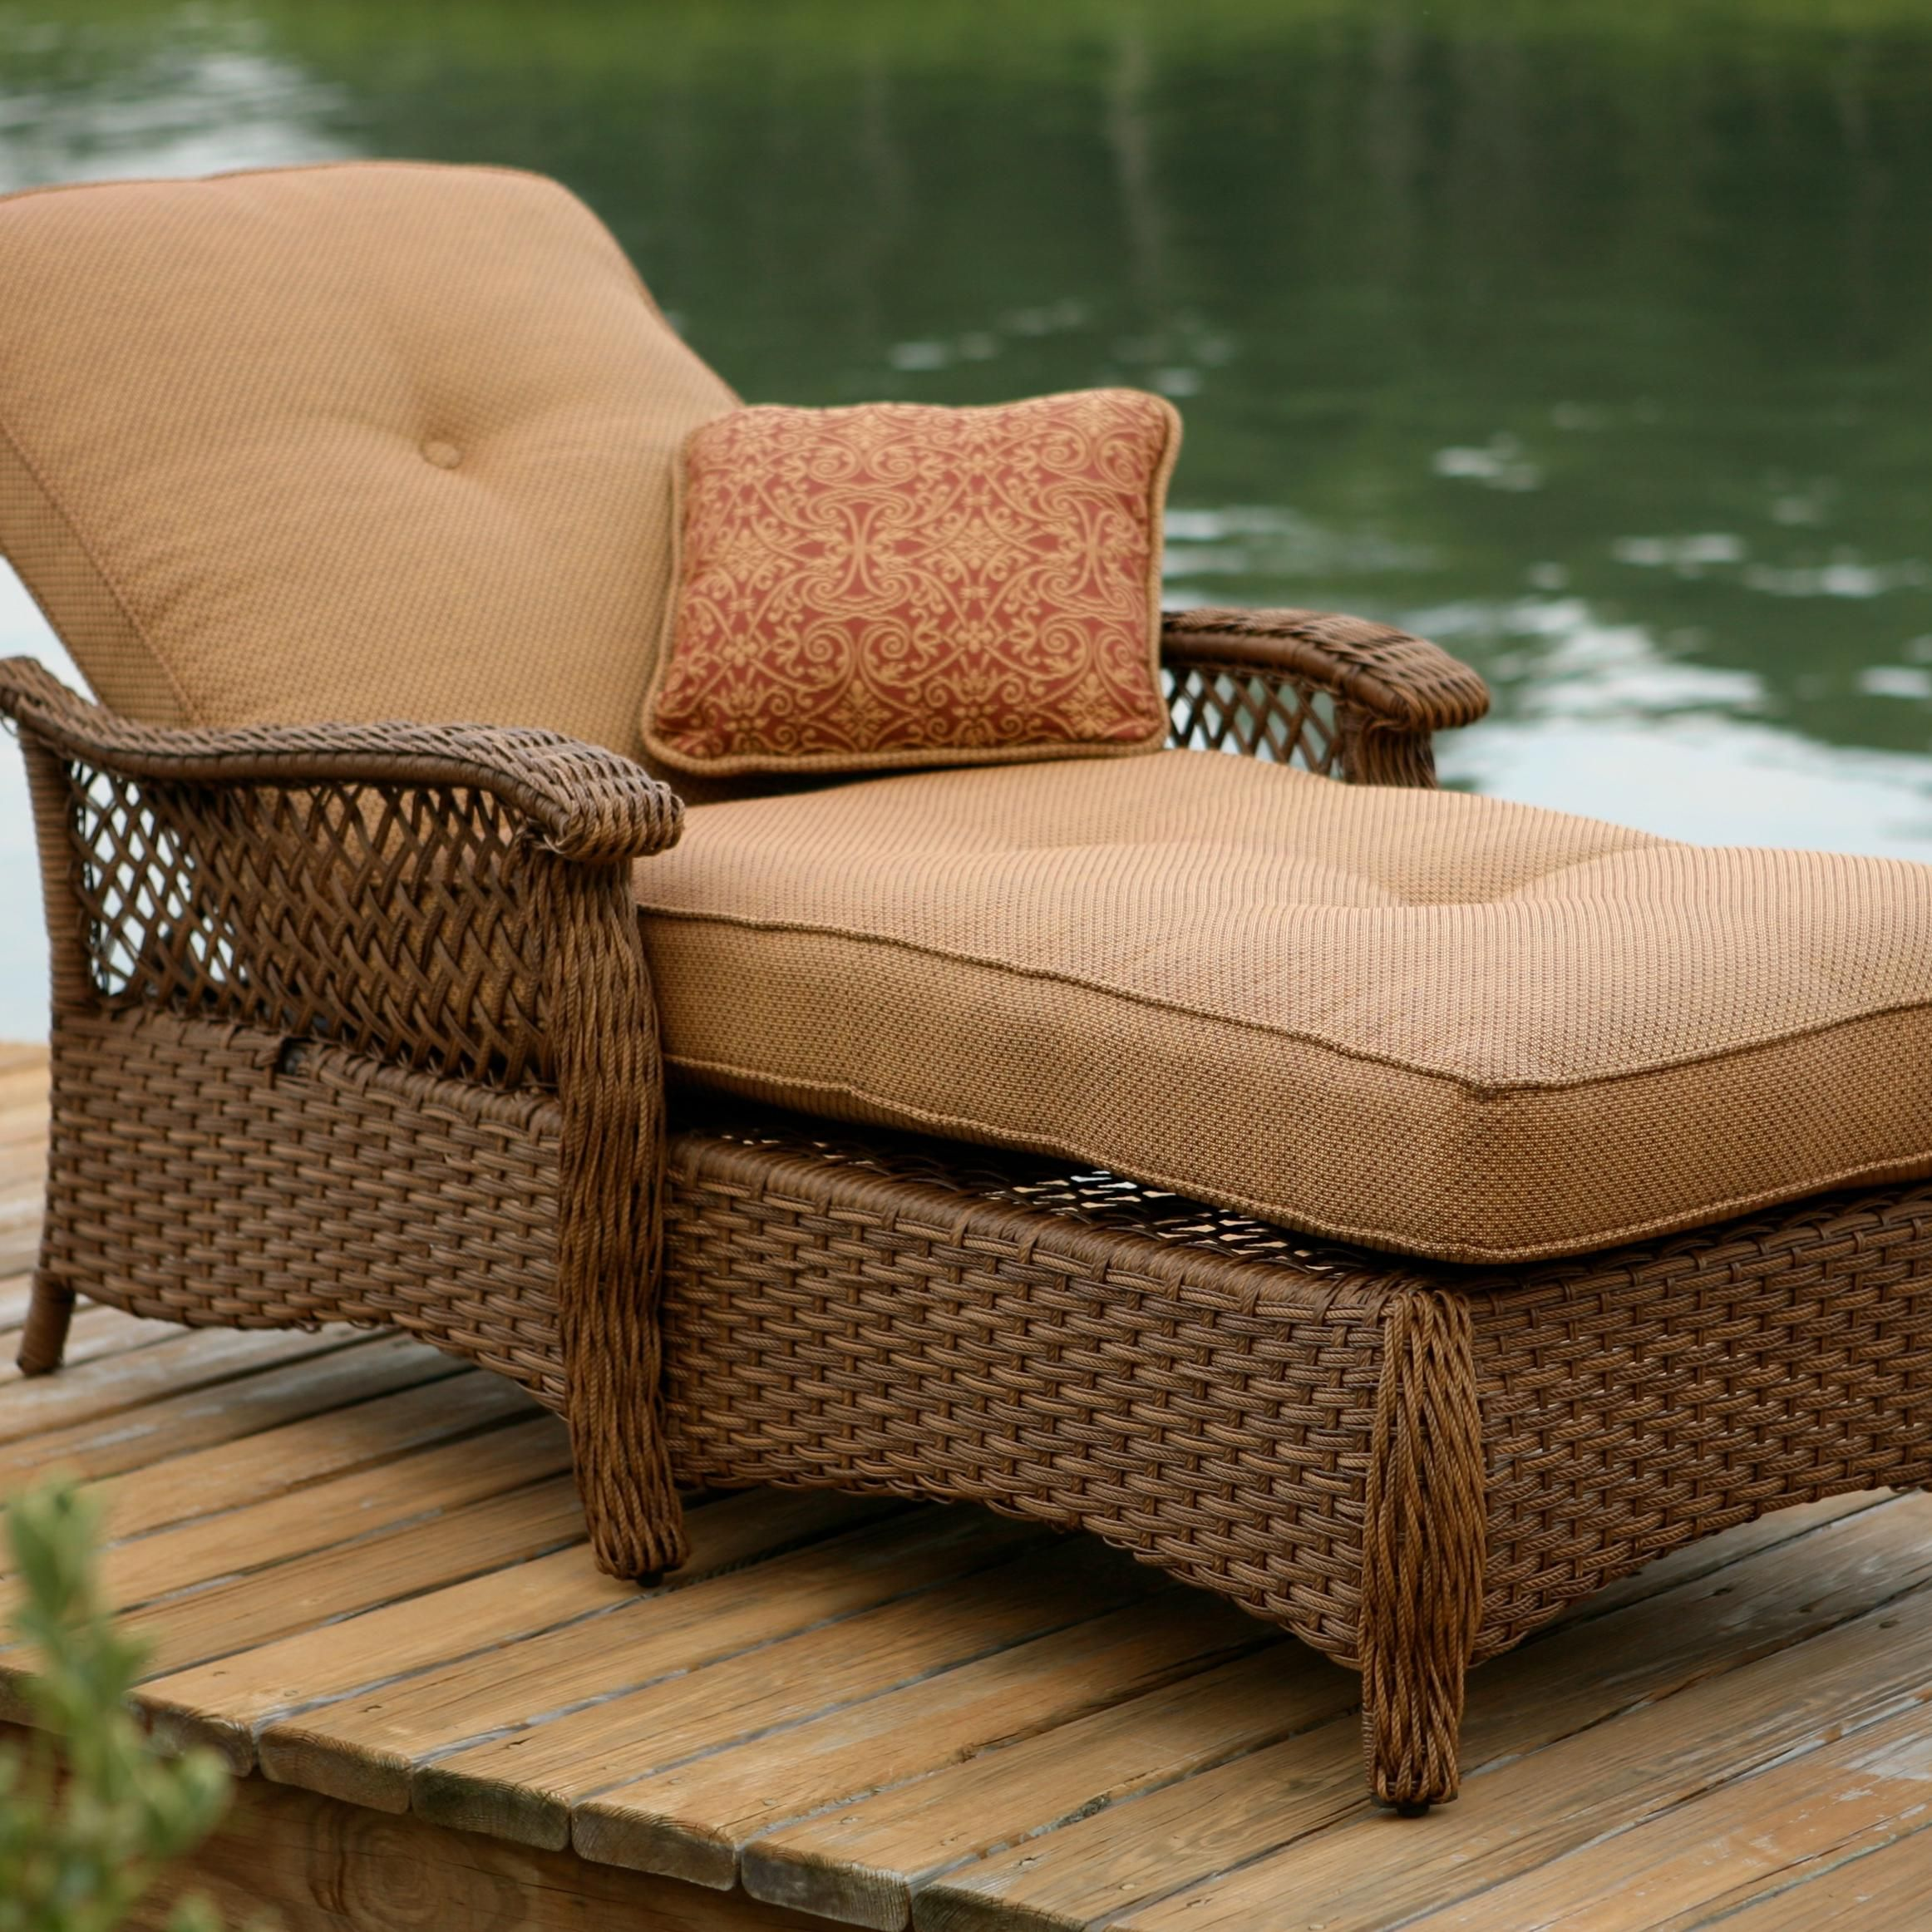 Veranda--Agio Outdoor Woven Chaise Lounge by Agio | Patio & Outdoor ...